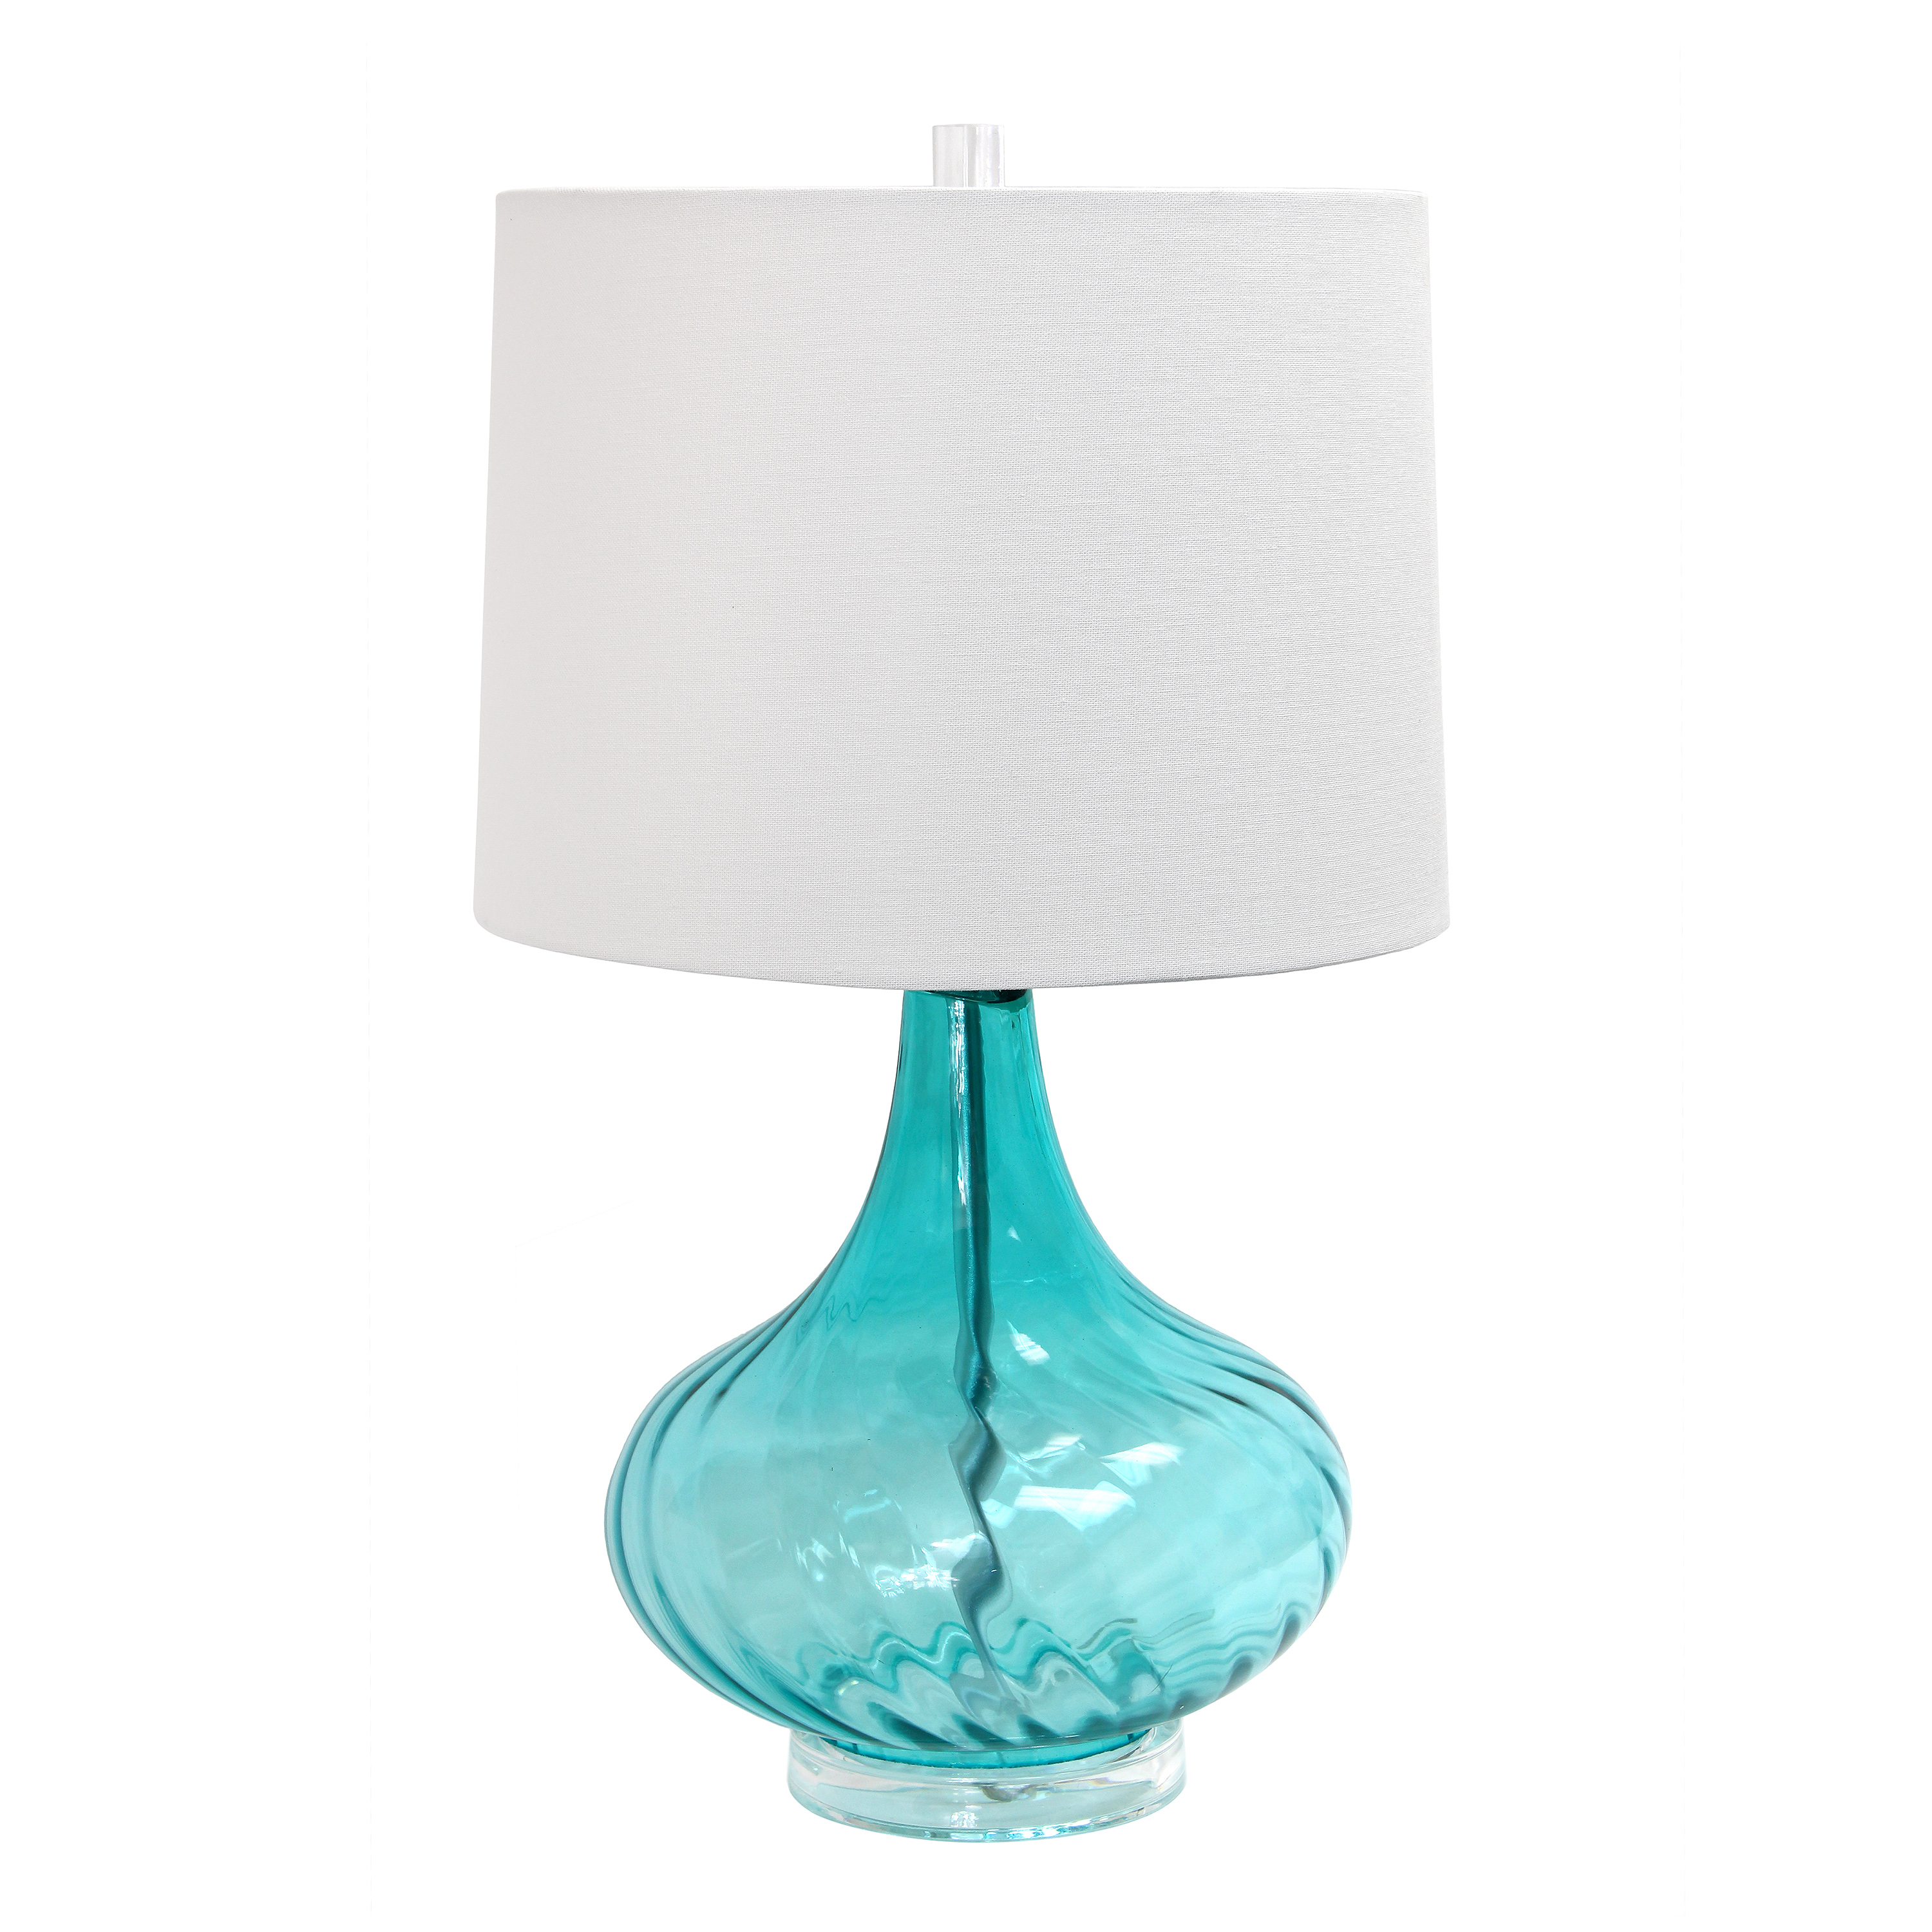 Elegant Designs Glass Table Lamp With Fabric Shade, Light Blue